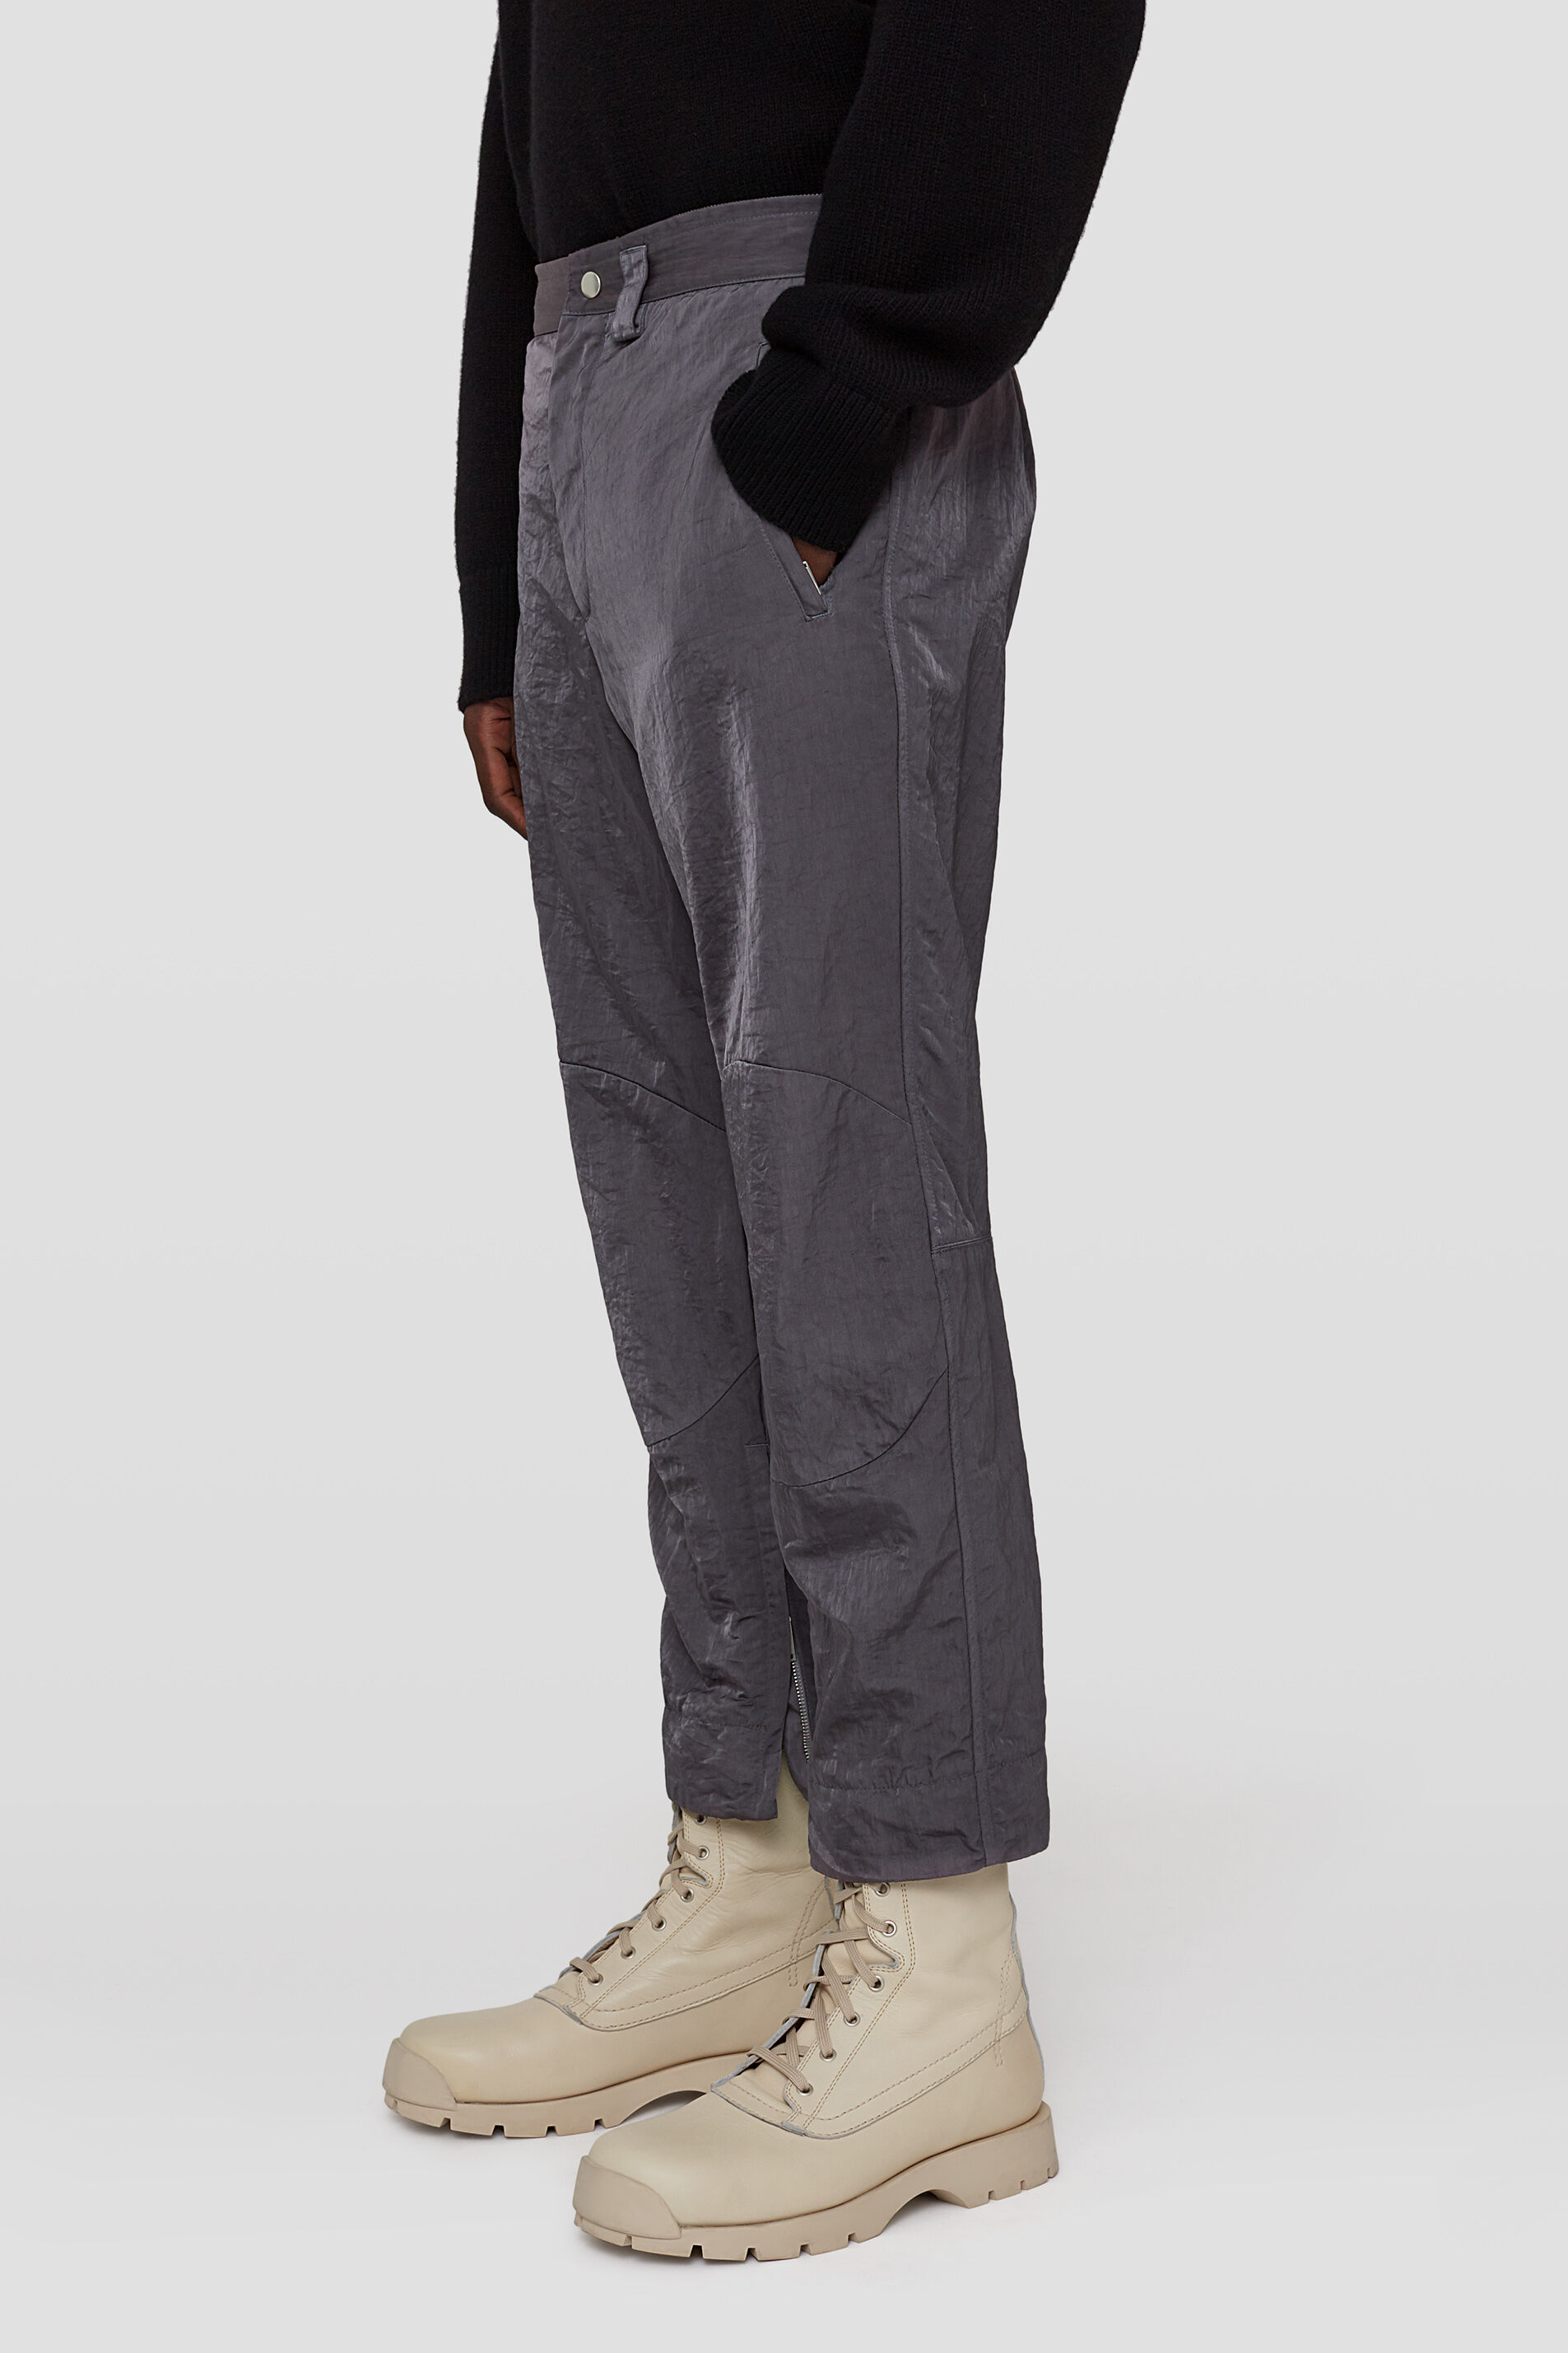 Zipped-Ankle Trousers, grey, large